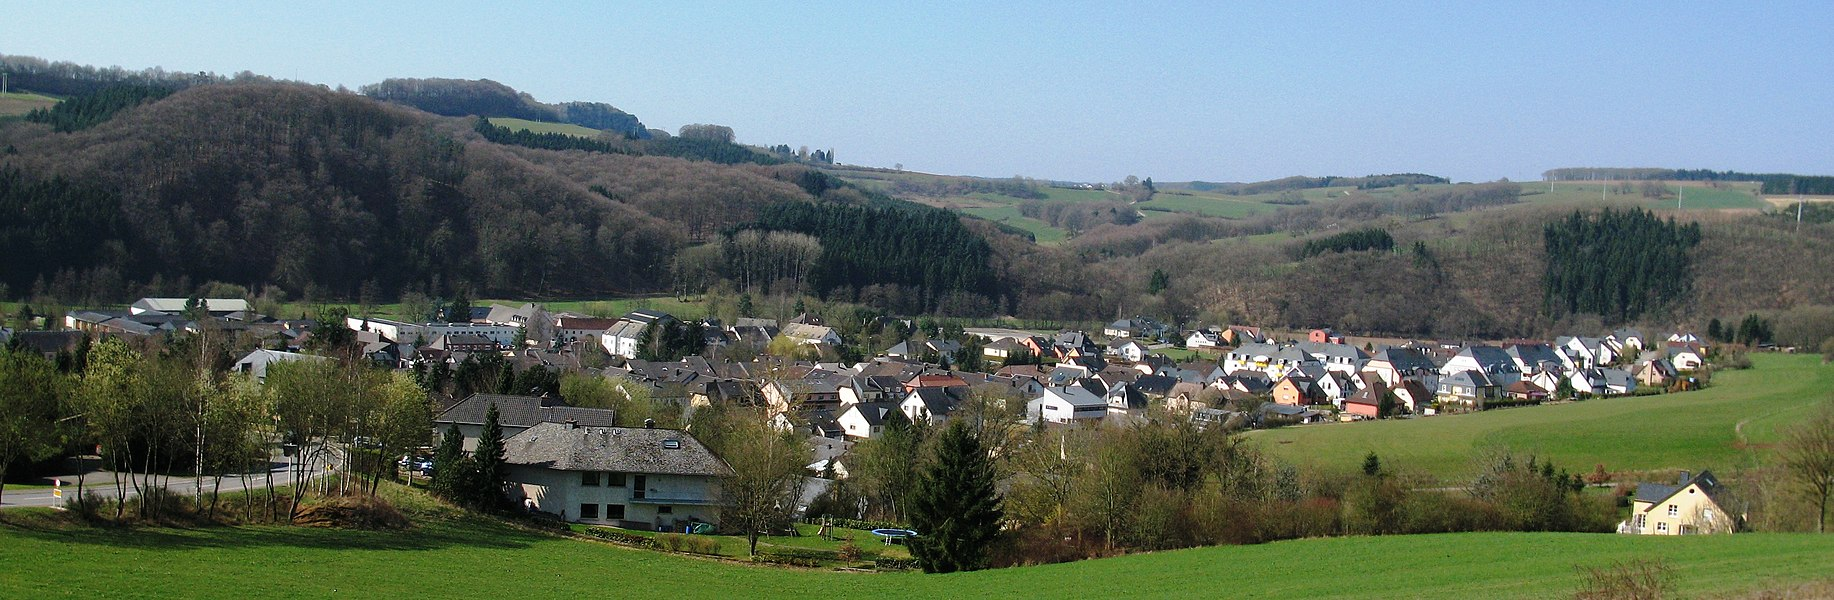 Northern part of Warken seen from the hill Tonn.